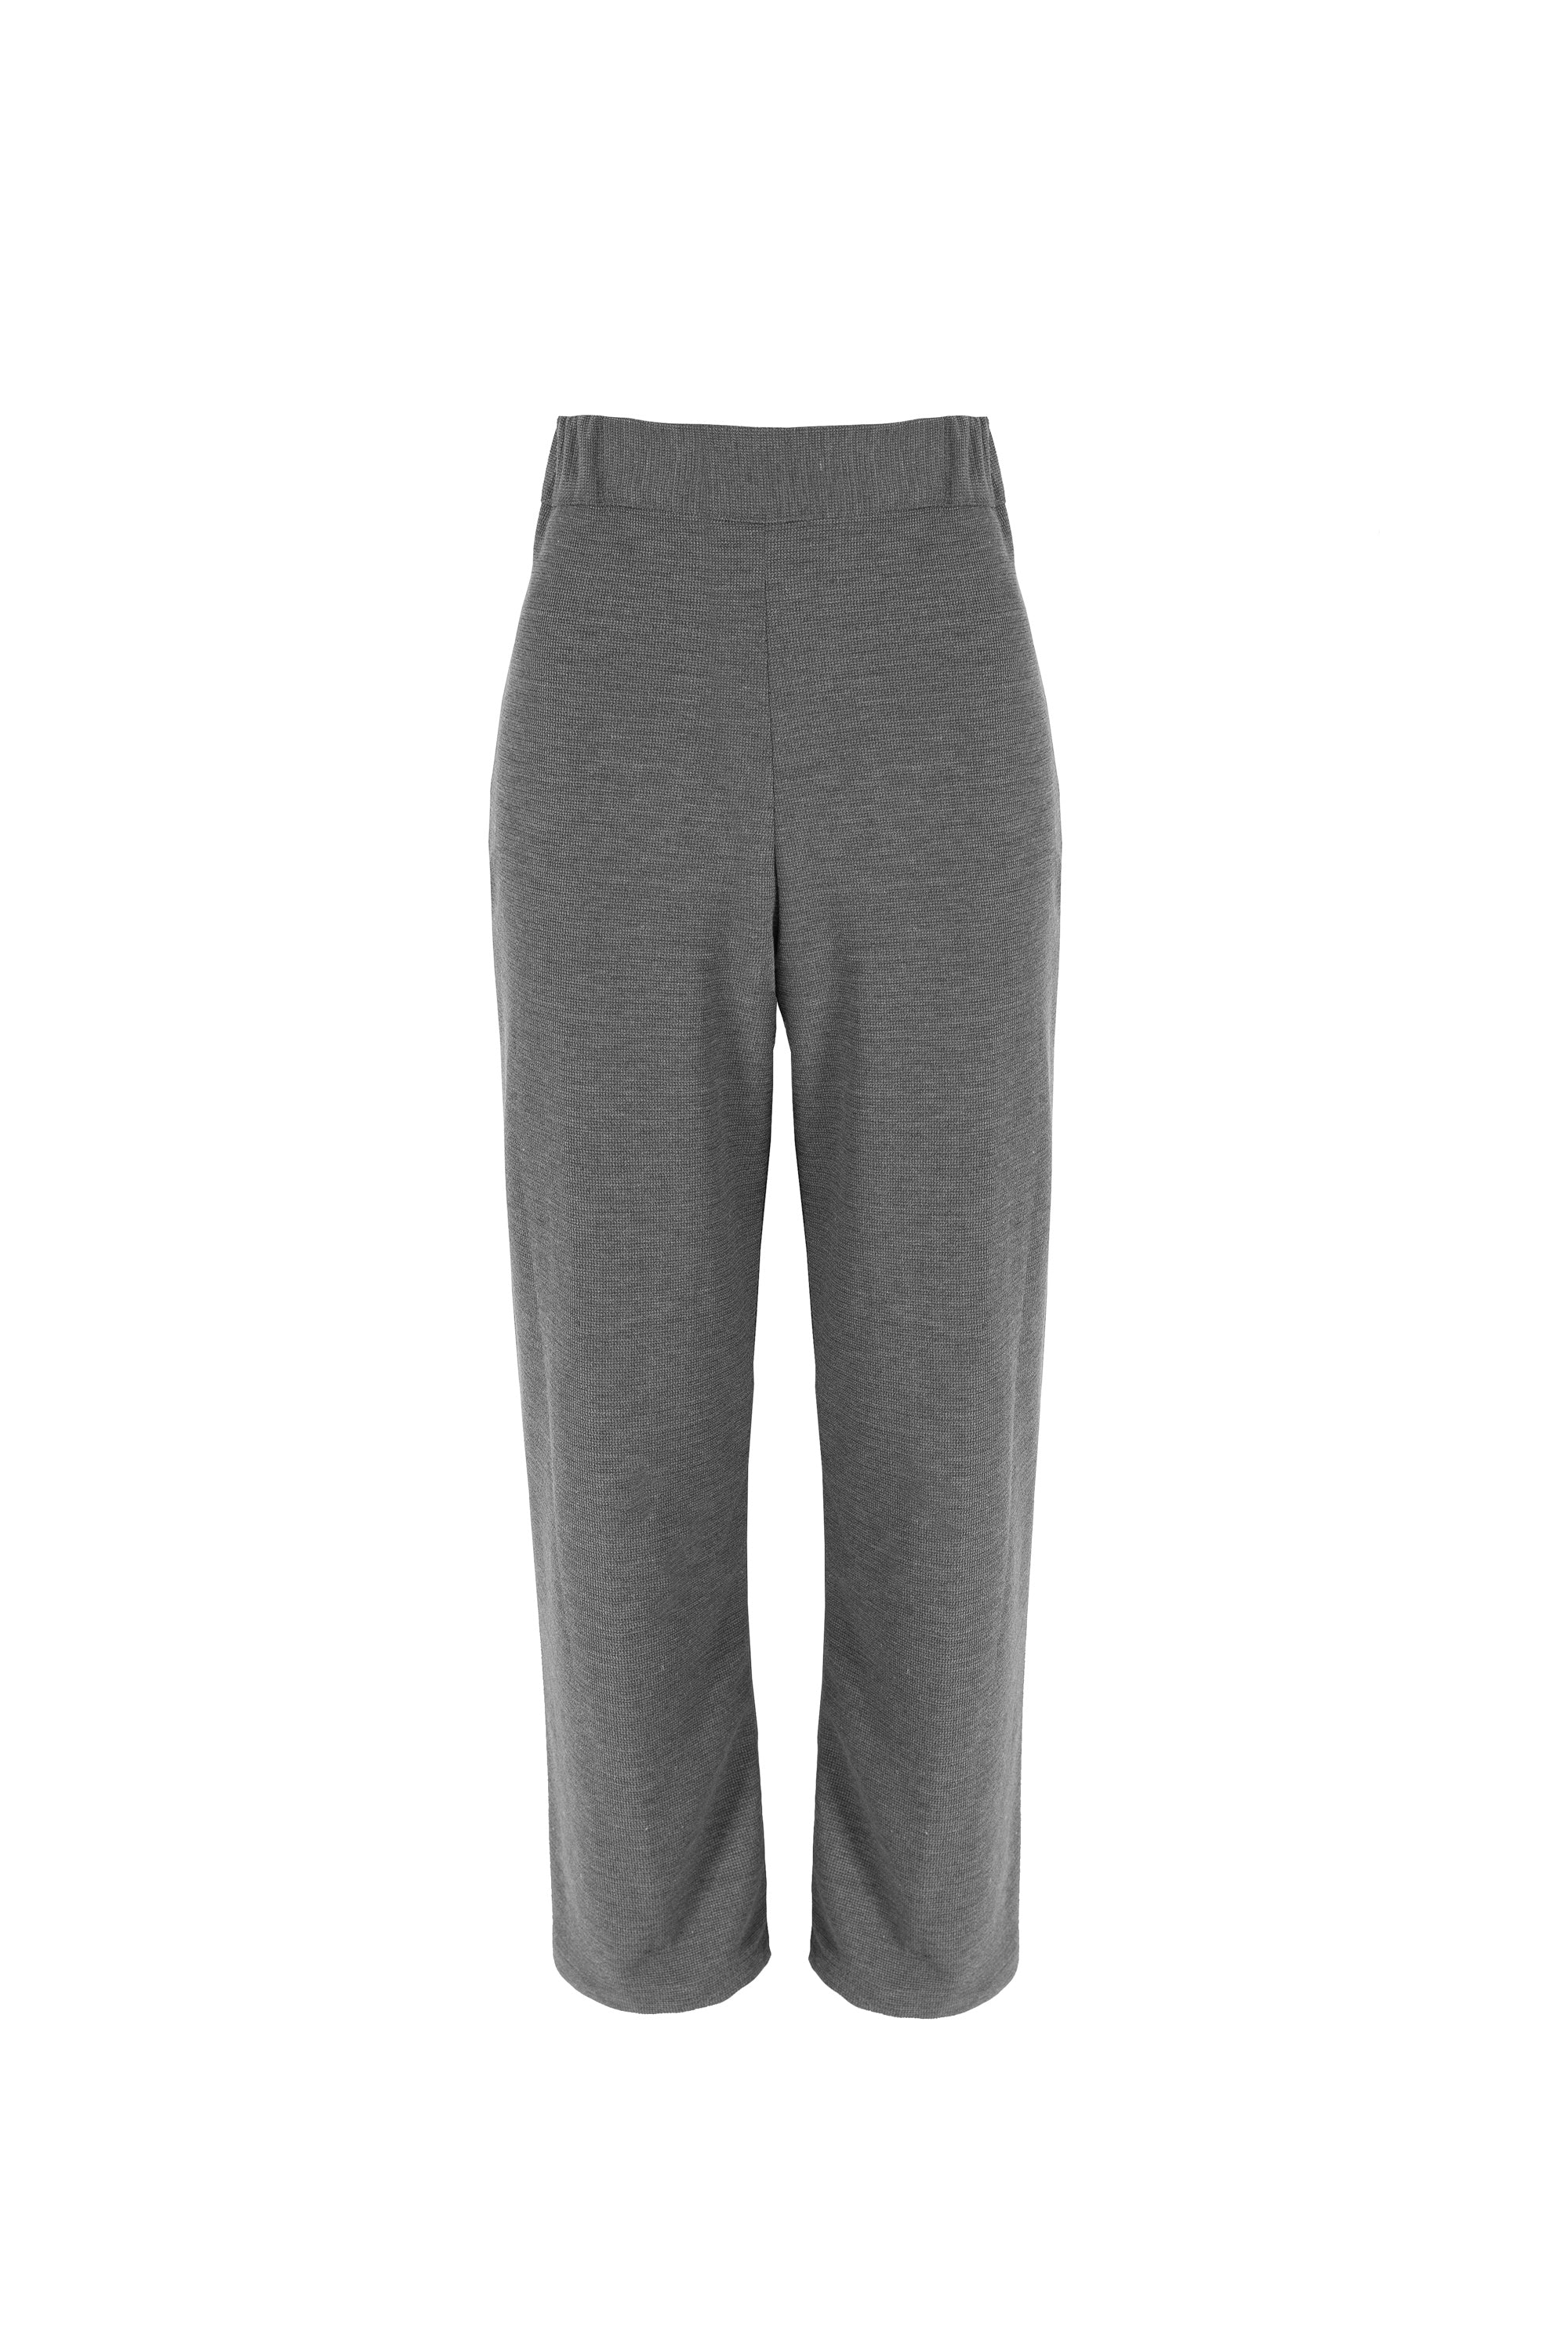 Nature | gray pants